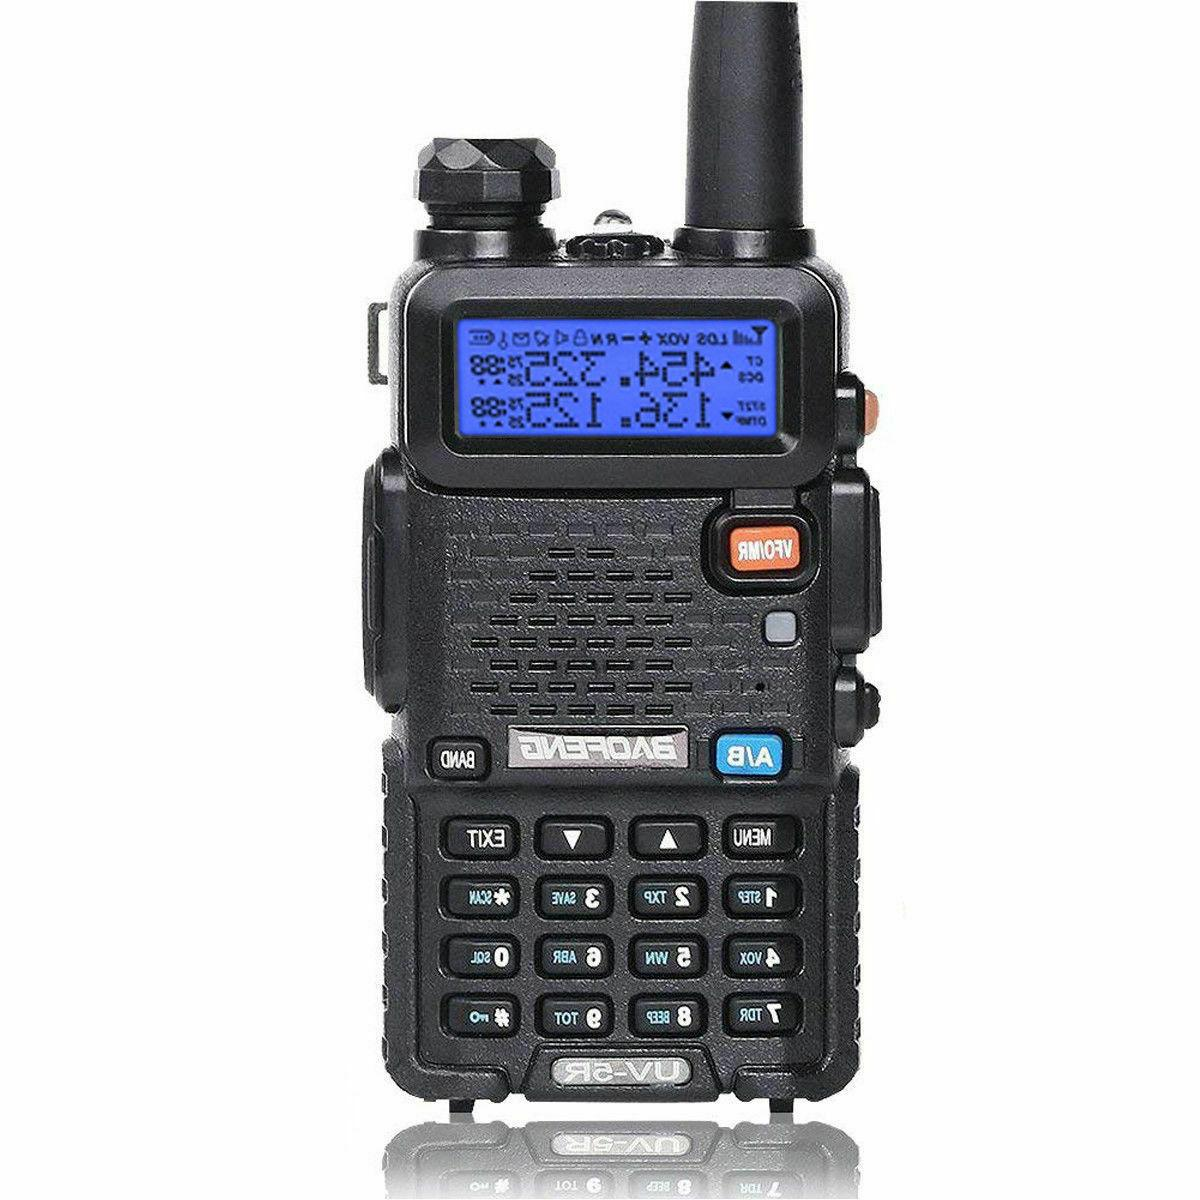 Baofeng UV-5R Handheld Walikie Talkie Scanner way Transceiver Police Antenna